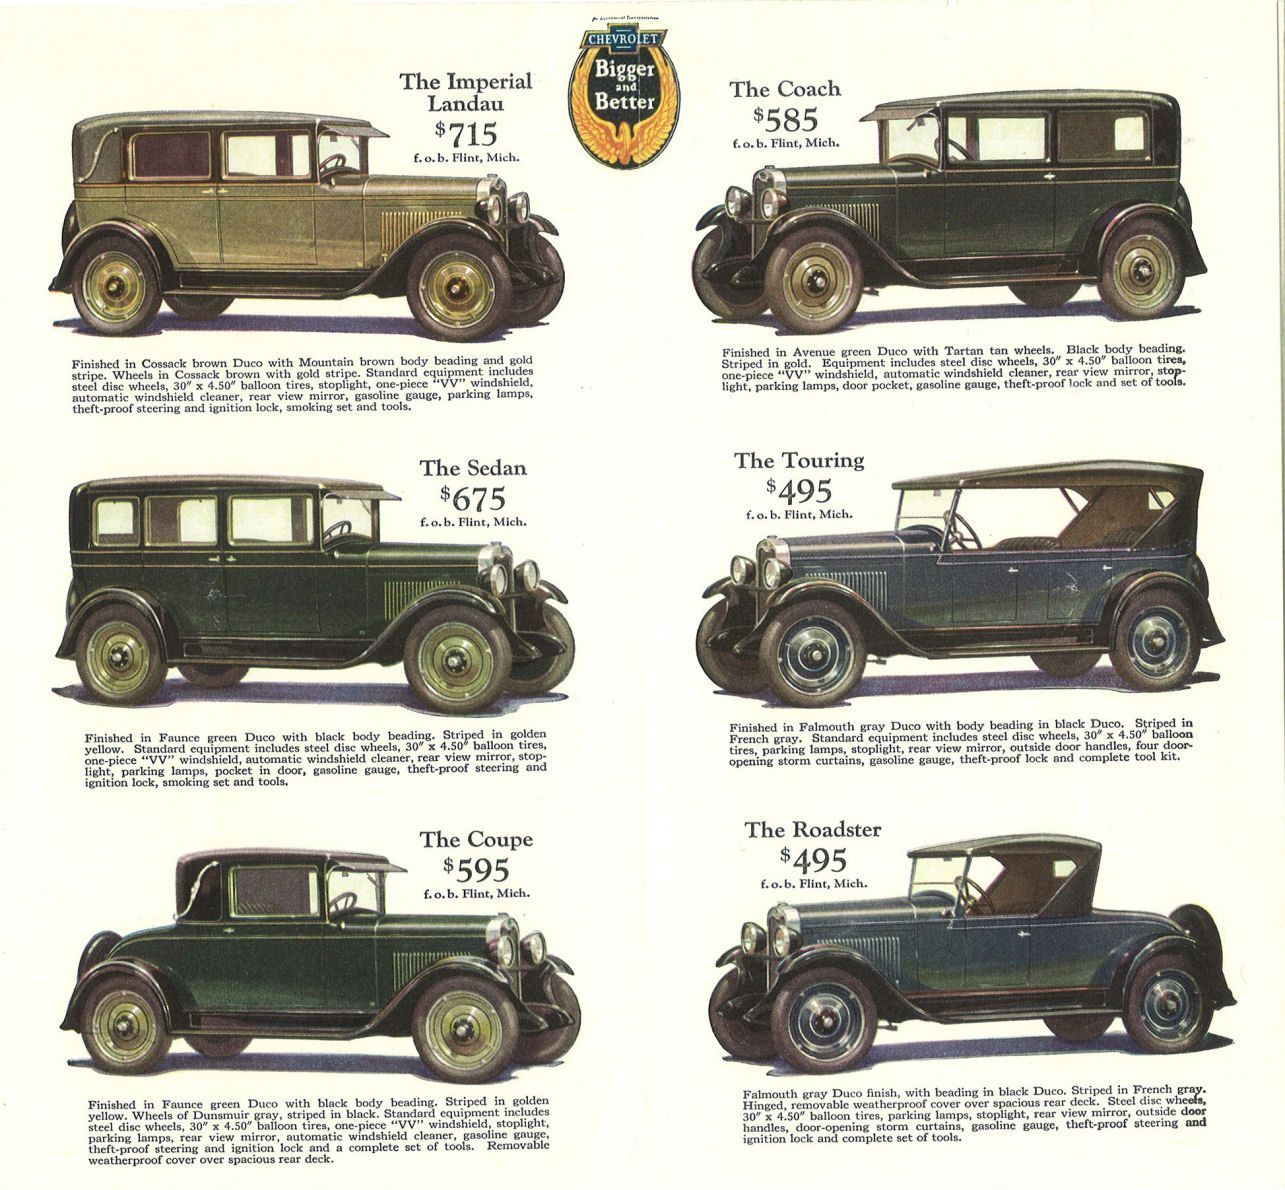 1928 Chevrolet Ad | Cars,Oil and Gas | Pinterest | Chevrolet, Ads ...